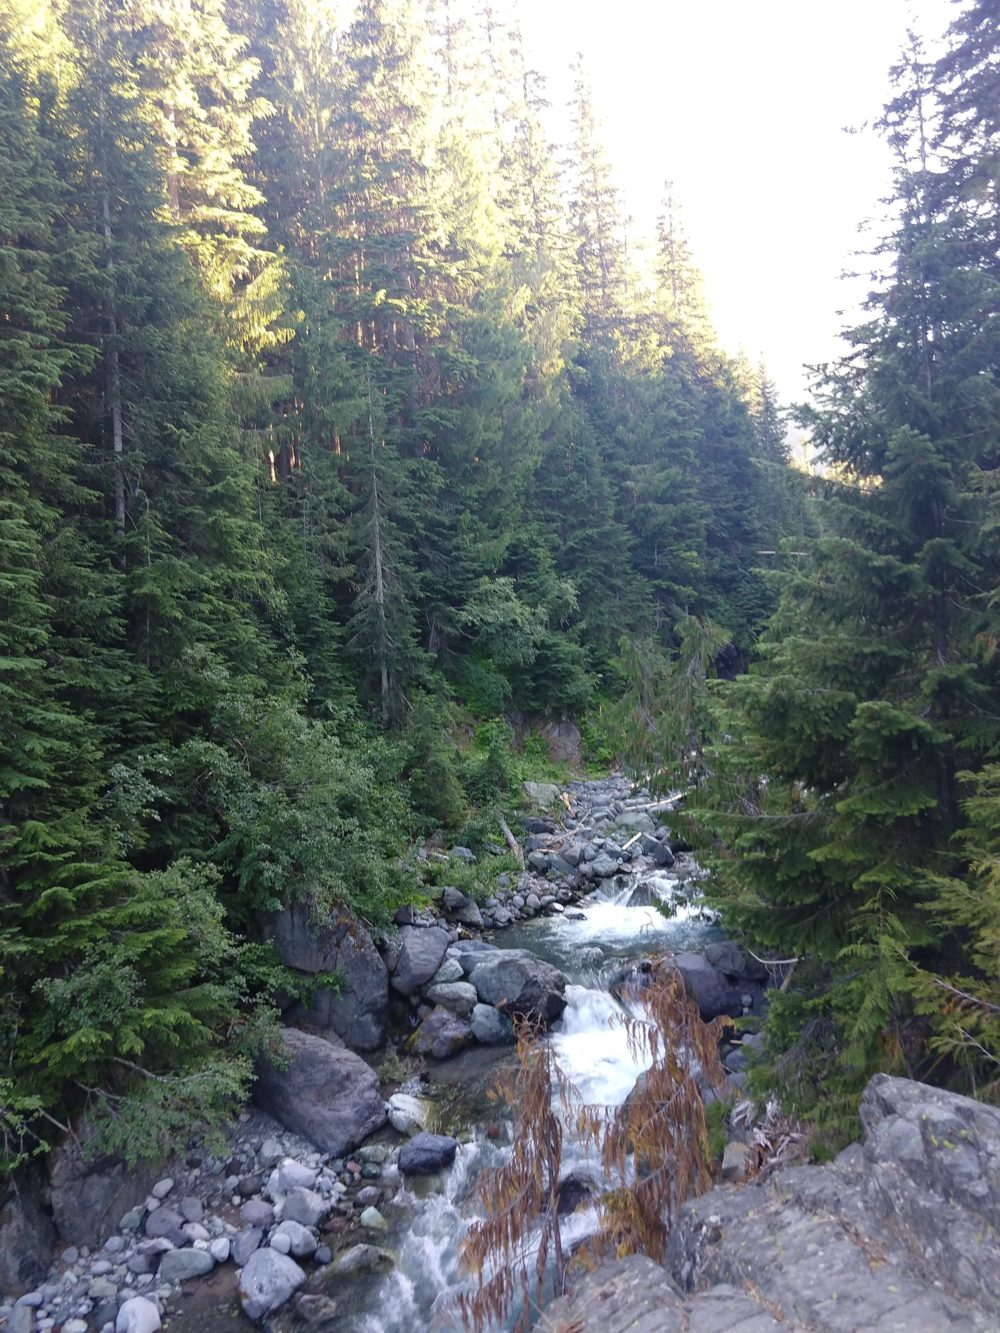 Pine trees and a waterfall in the foothills of Mount Rainier